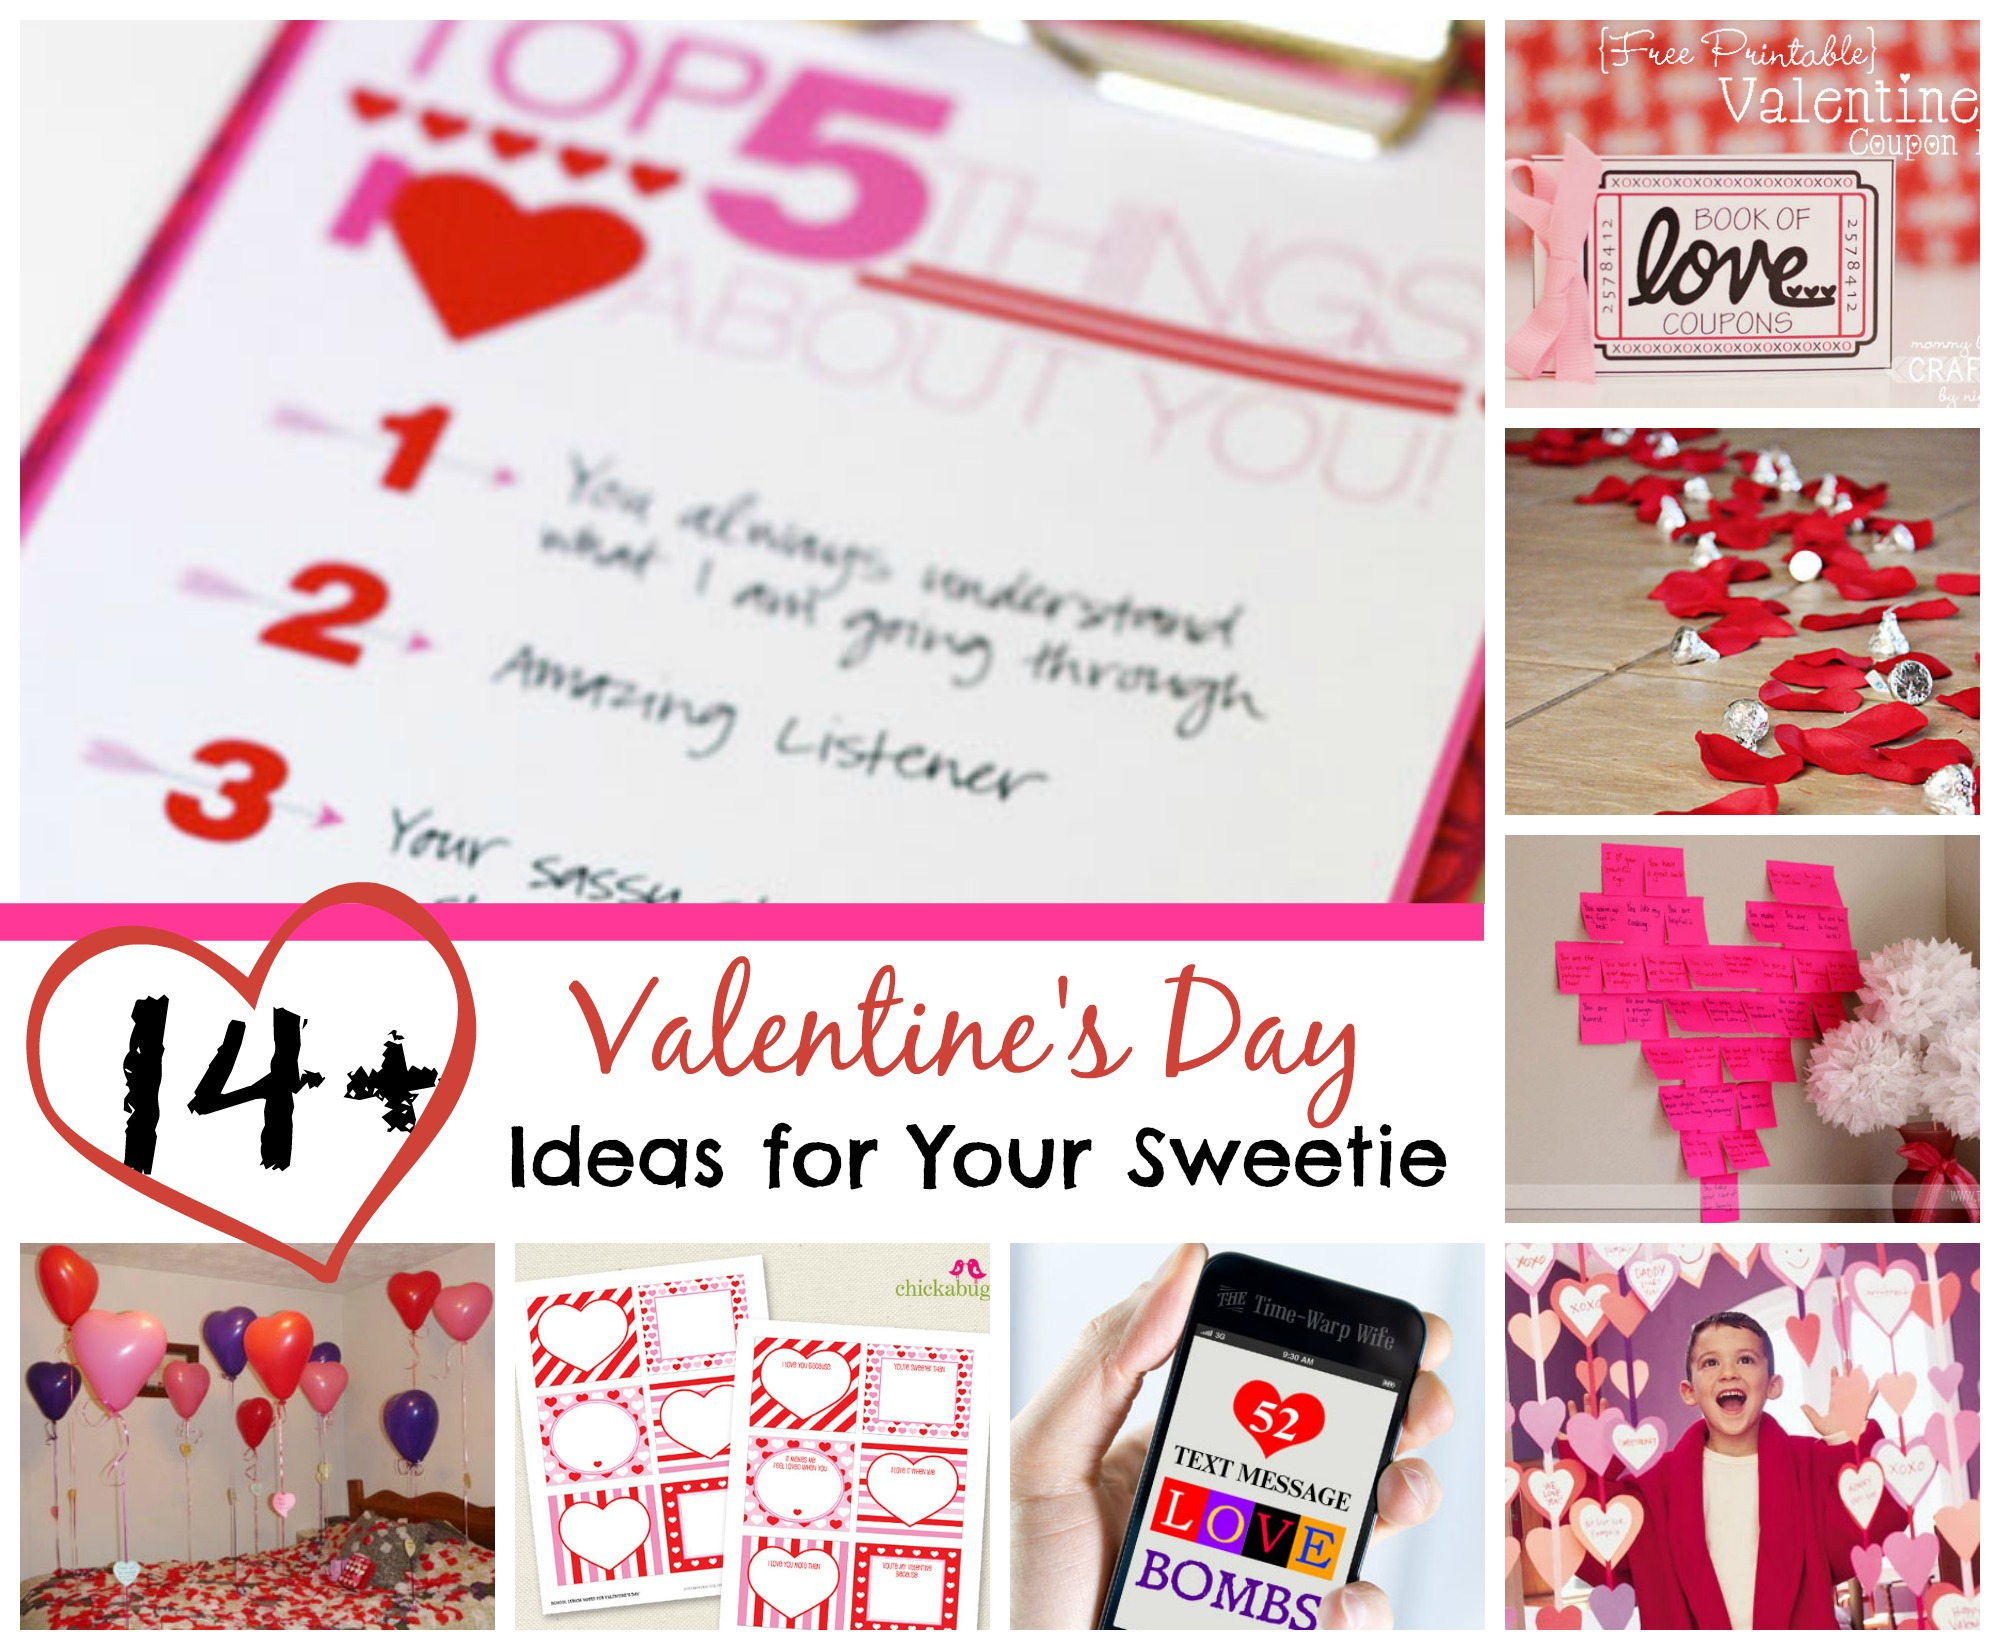 Valentine's Day Ideas for Your Sweeties